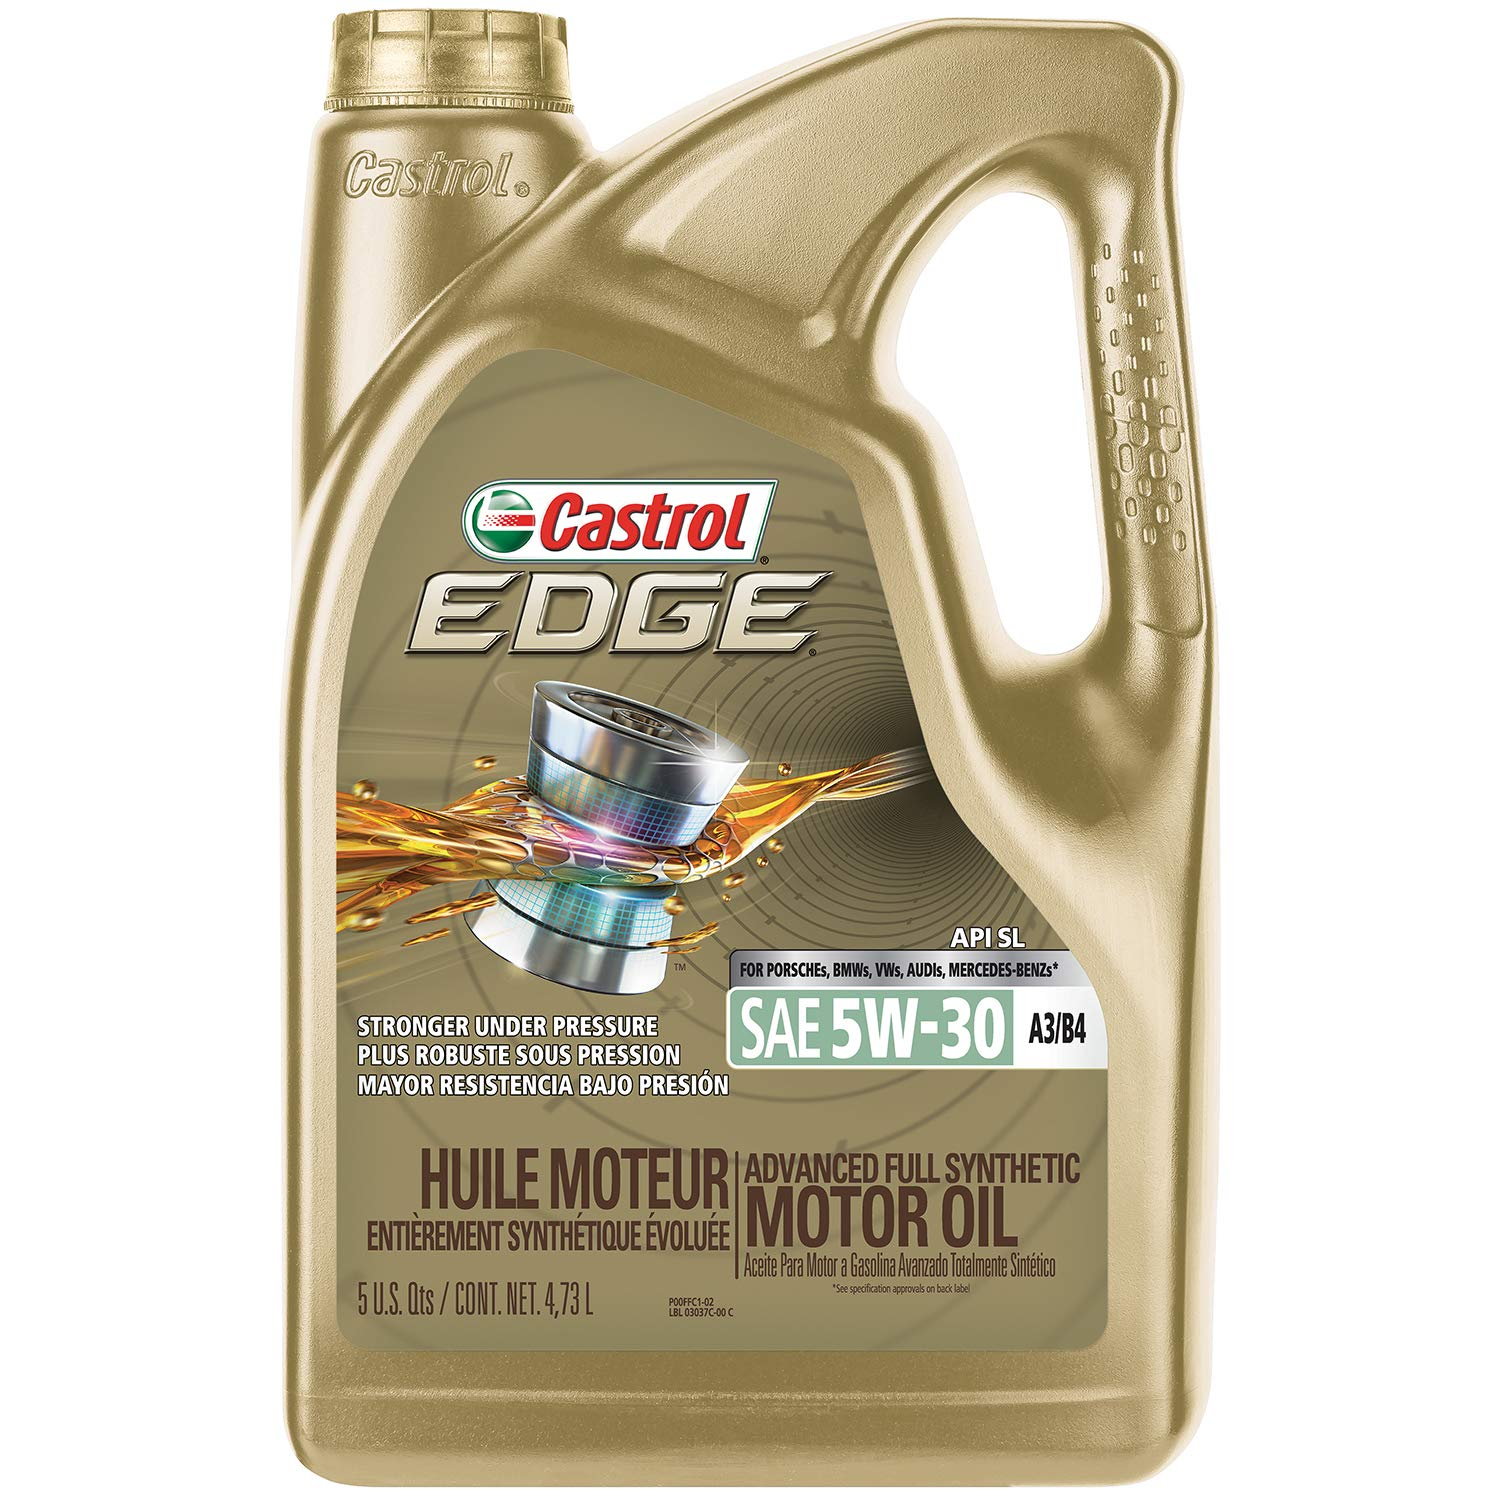 Amazon.com: Castrol 03037 EDGE 5W-30 A3/B4 Advanced Full Synthetic Motor Oil, 5 quart, 3 Pack: Automotive